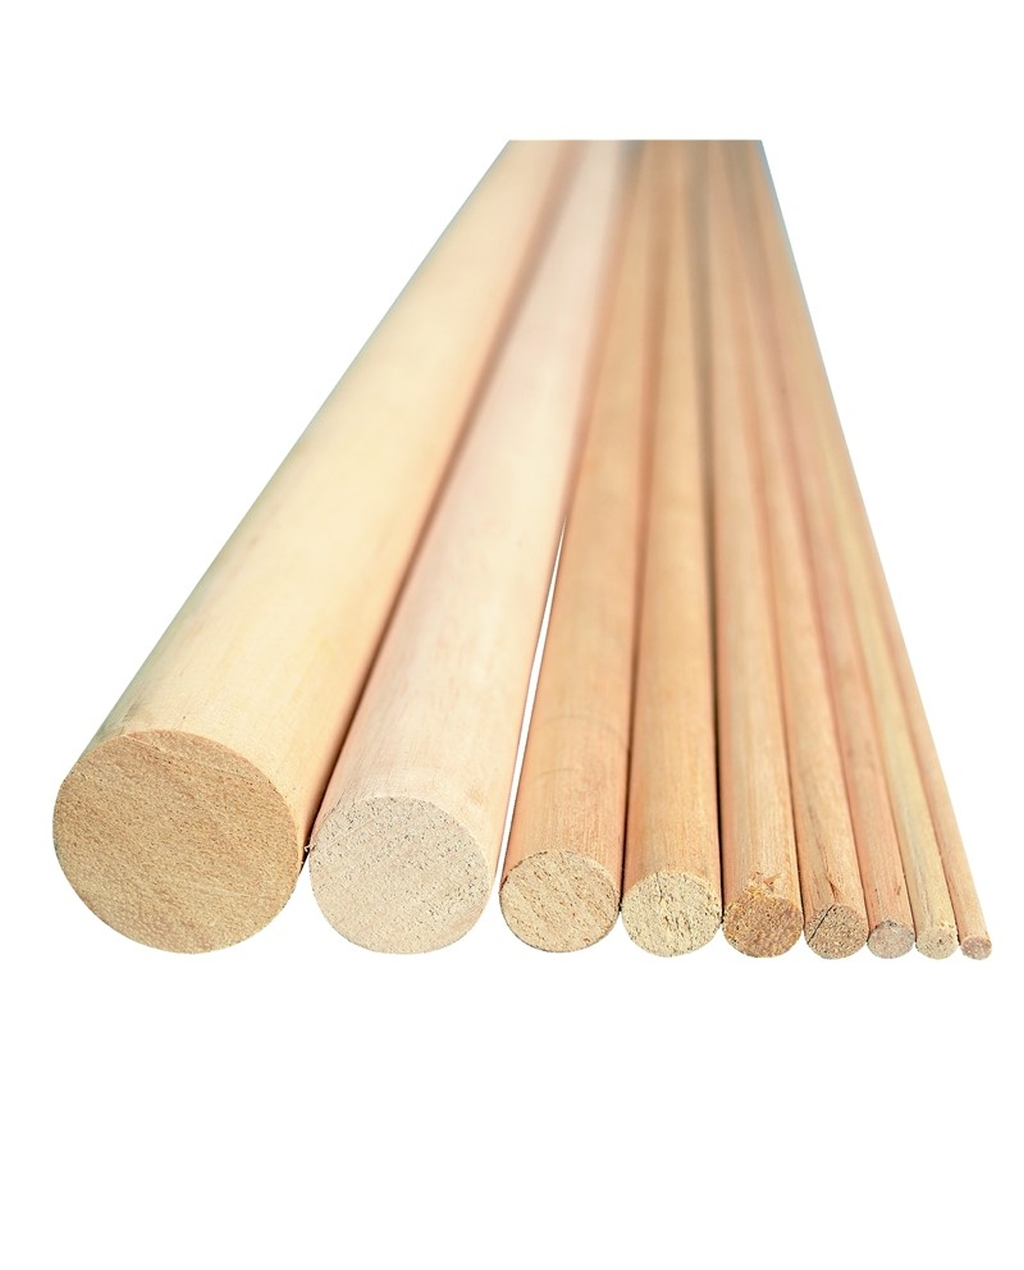 3mm x 600mm Ramin Dowels